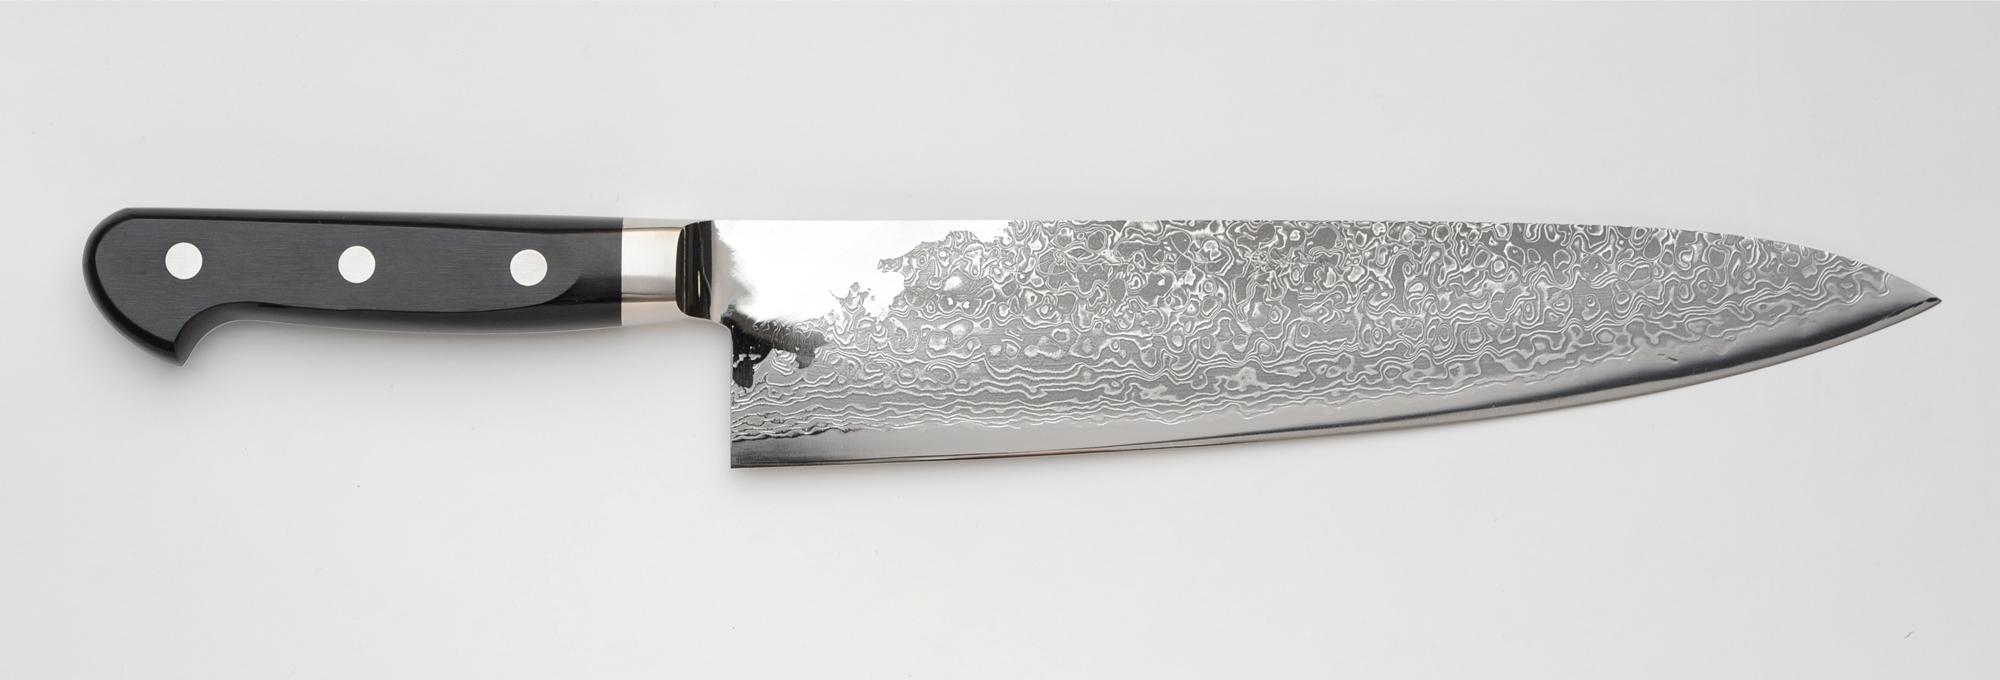 damascus kitchen knives black canisters for r2 chef s knife 240mm 9 5in unique japan featuring